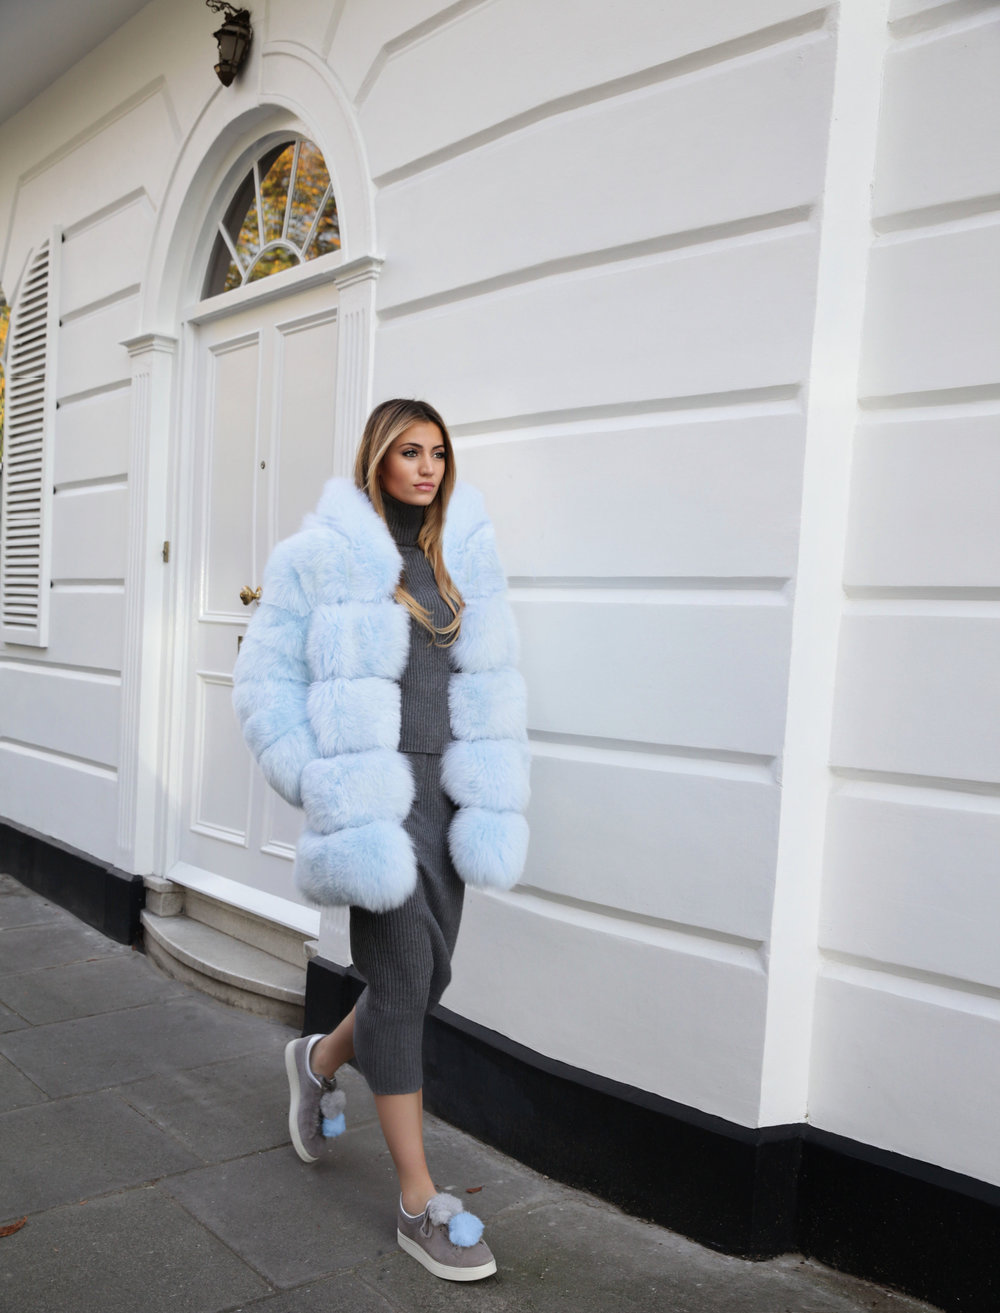 Influencer Maureen Kragt in the Boltons, shooting the latest collection of Lola Belle's furs. The Airy Blue hooded fur with ribbed zara sweater and pencil skirt.   Pair with the monster fendi backpack.   photo (2)